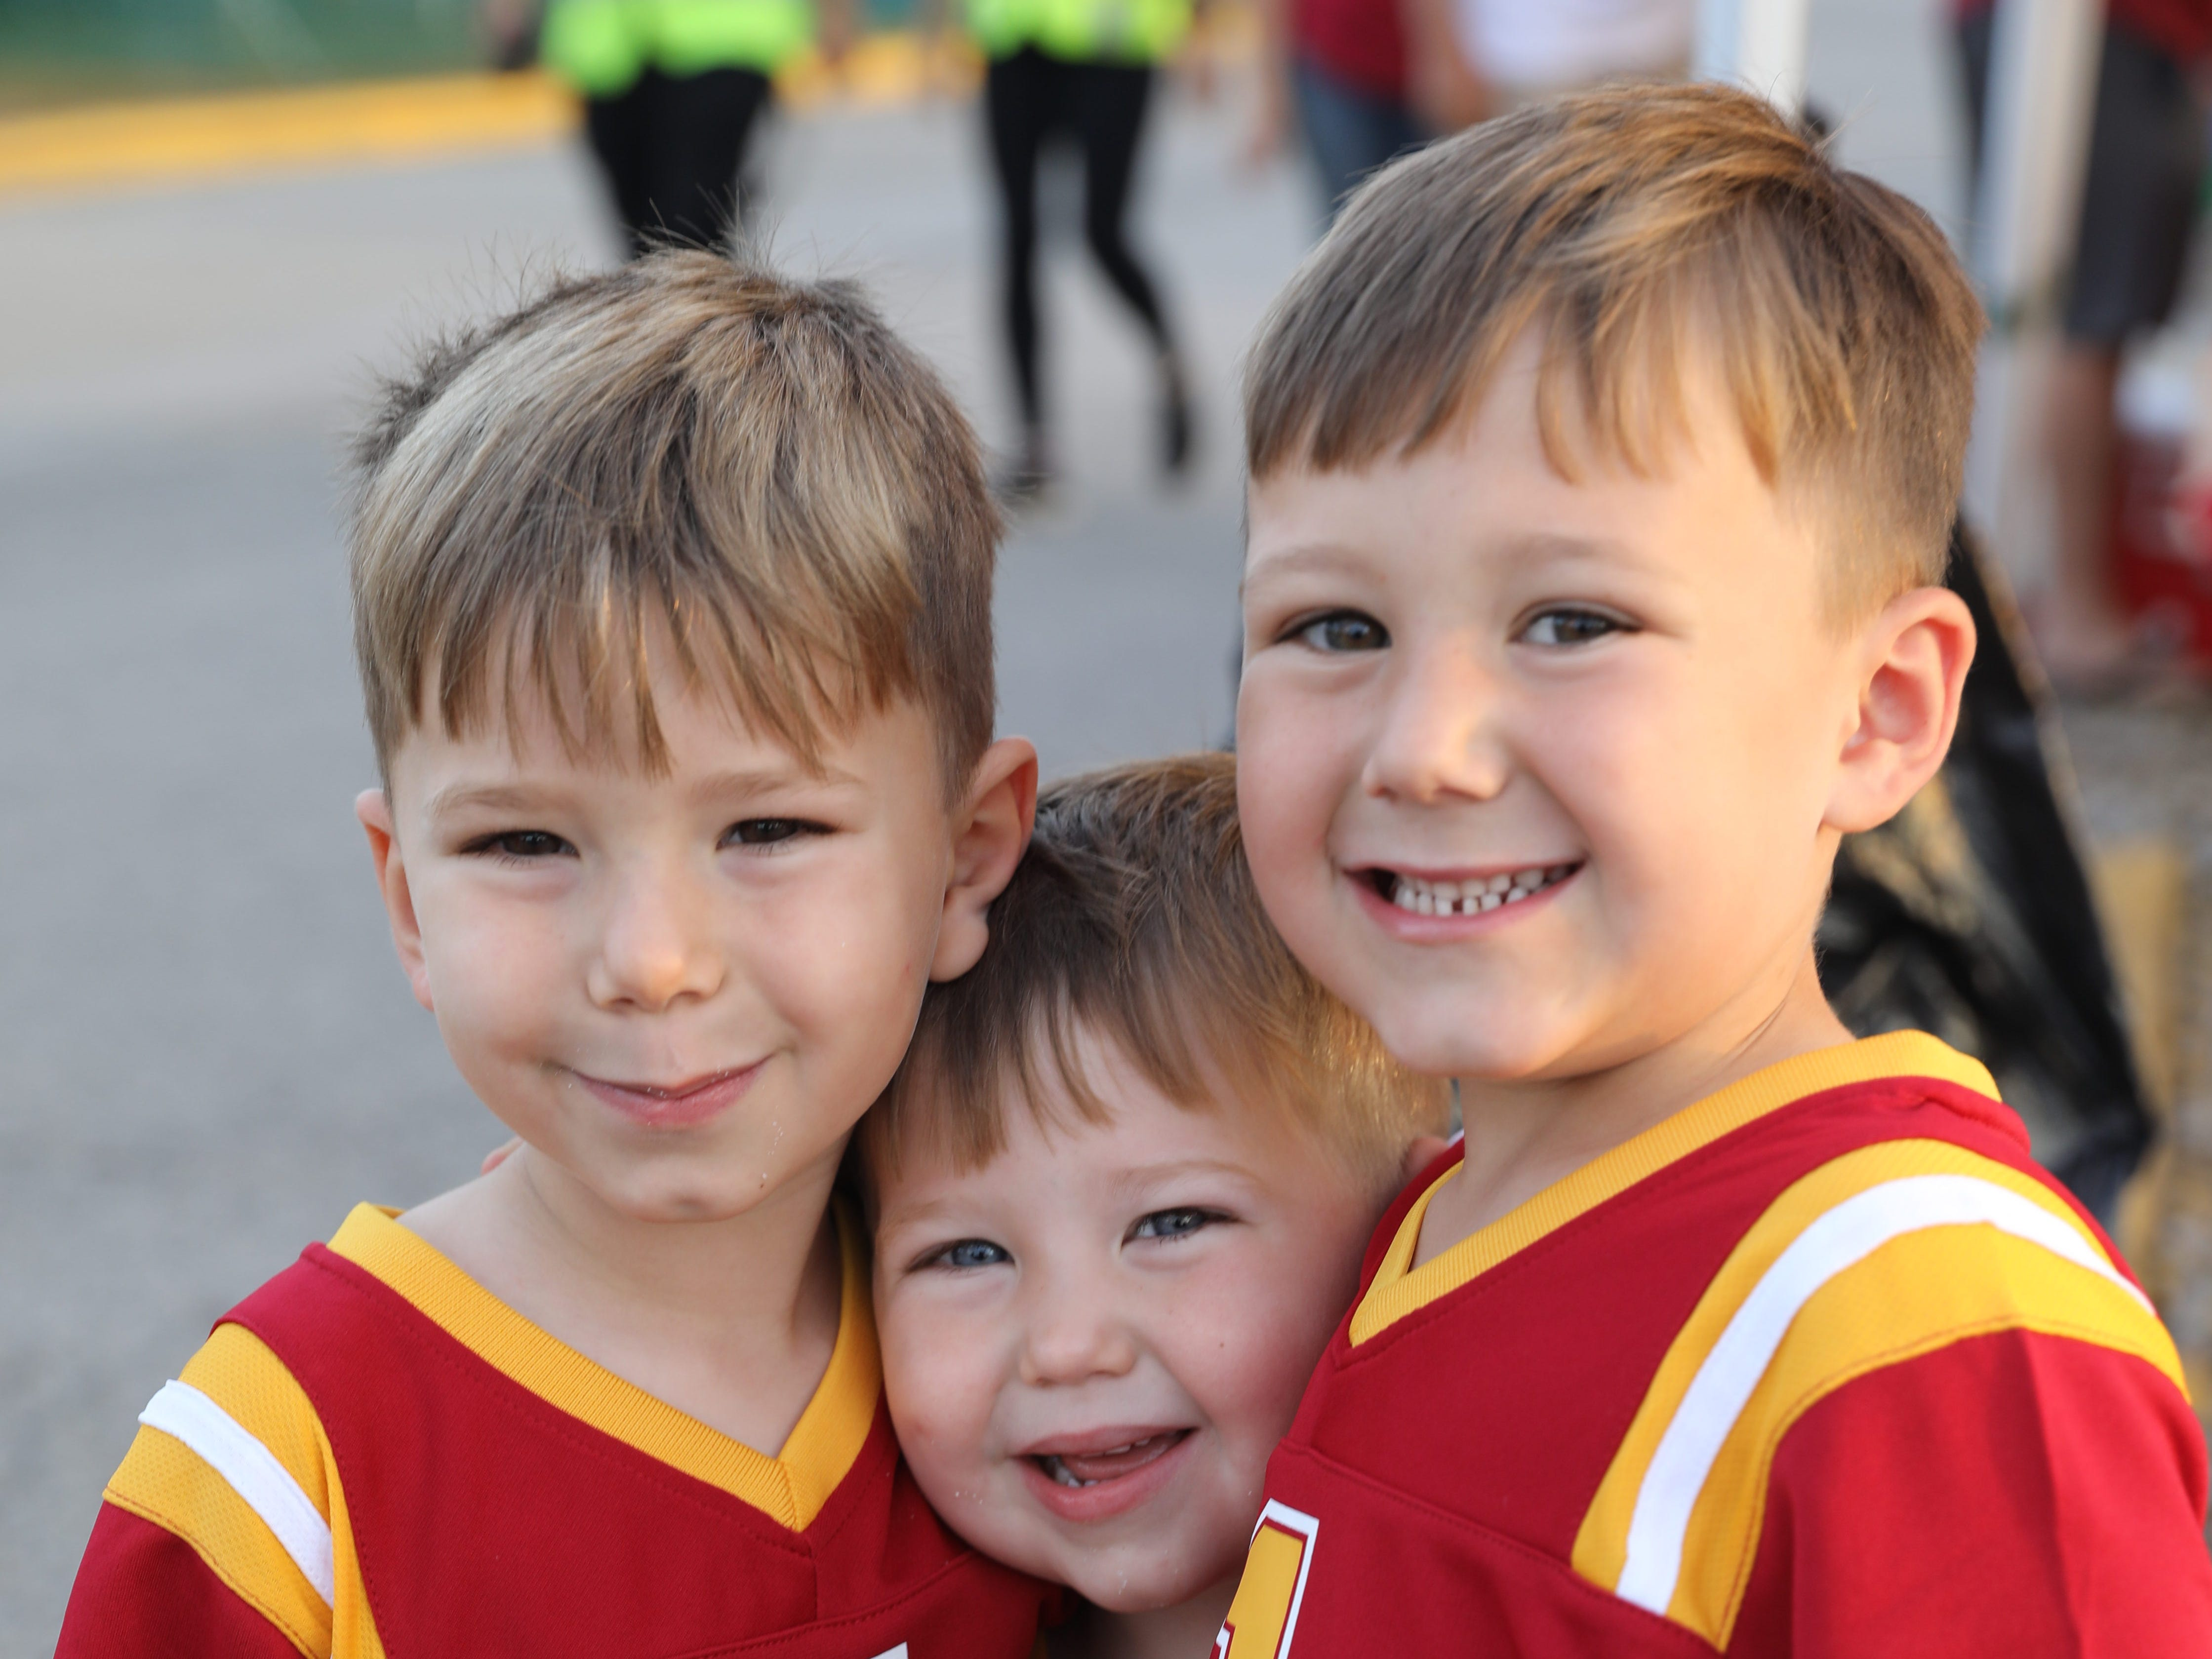 Colin Christensen, 4, (from left) Carter Christensen, 2, and Clayton Christensen, 5, all of St. Louis Saturday, Sept. 15, 2018, before the Iowa State football game against Oklahoma in Ames.